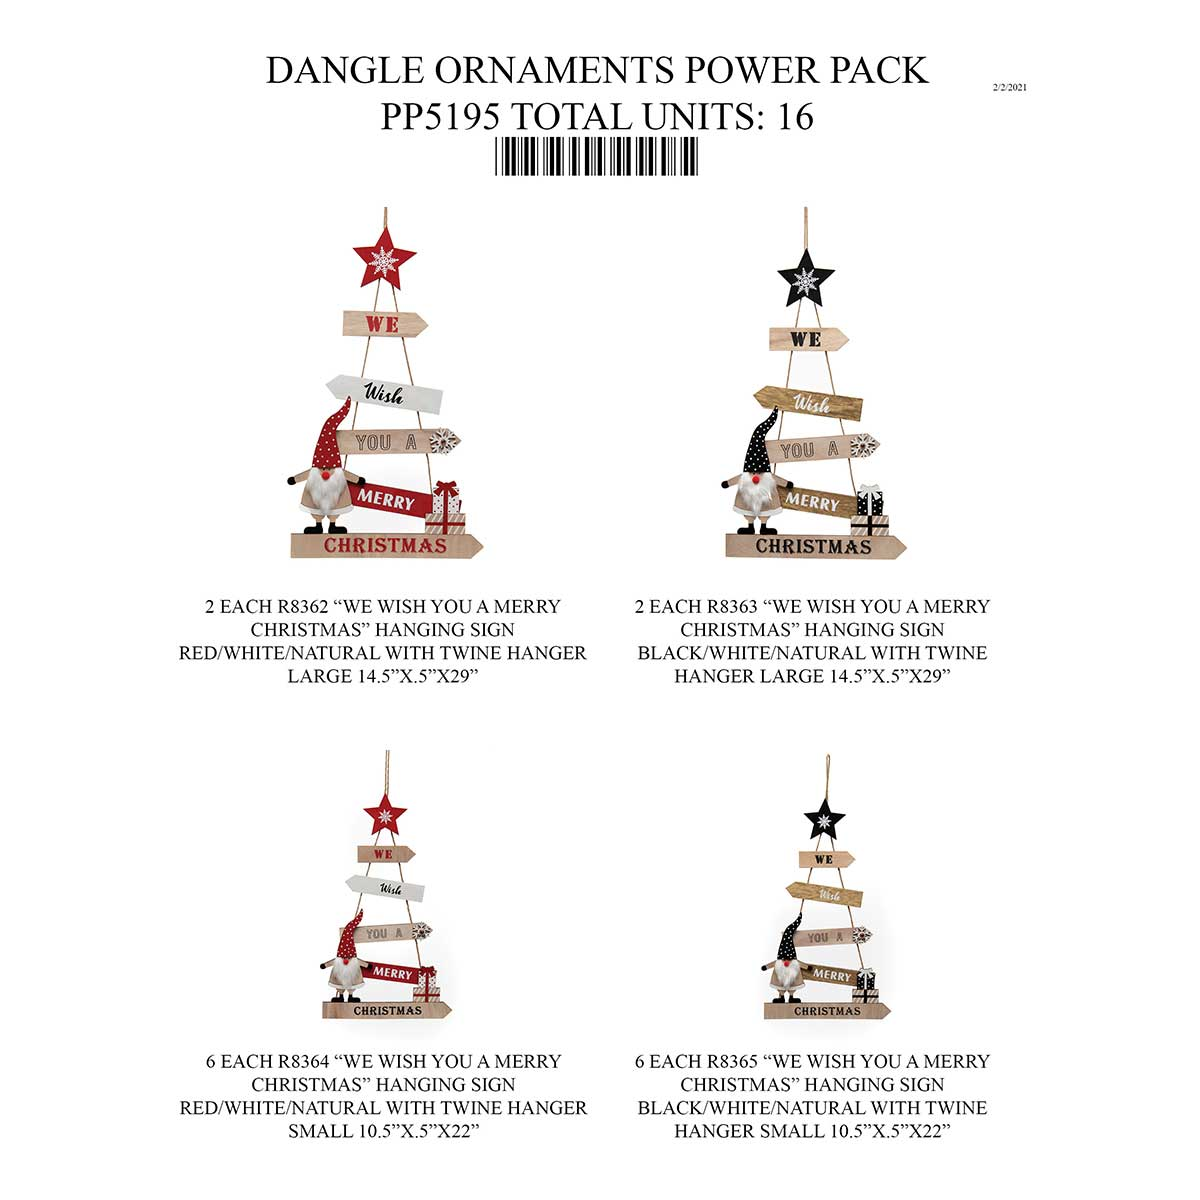 DANGLE ORNAMENT/SIGN POWER PACK 16 UNITS PP5195